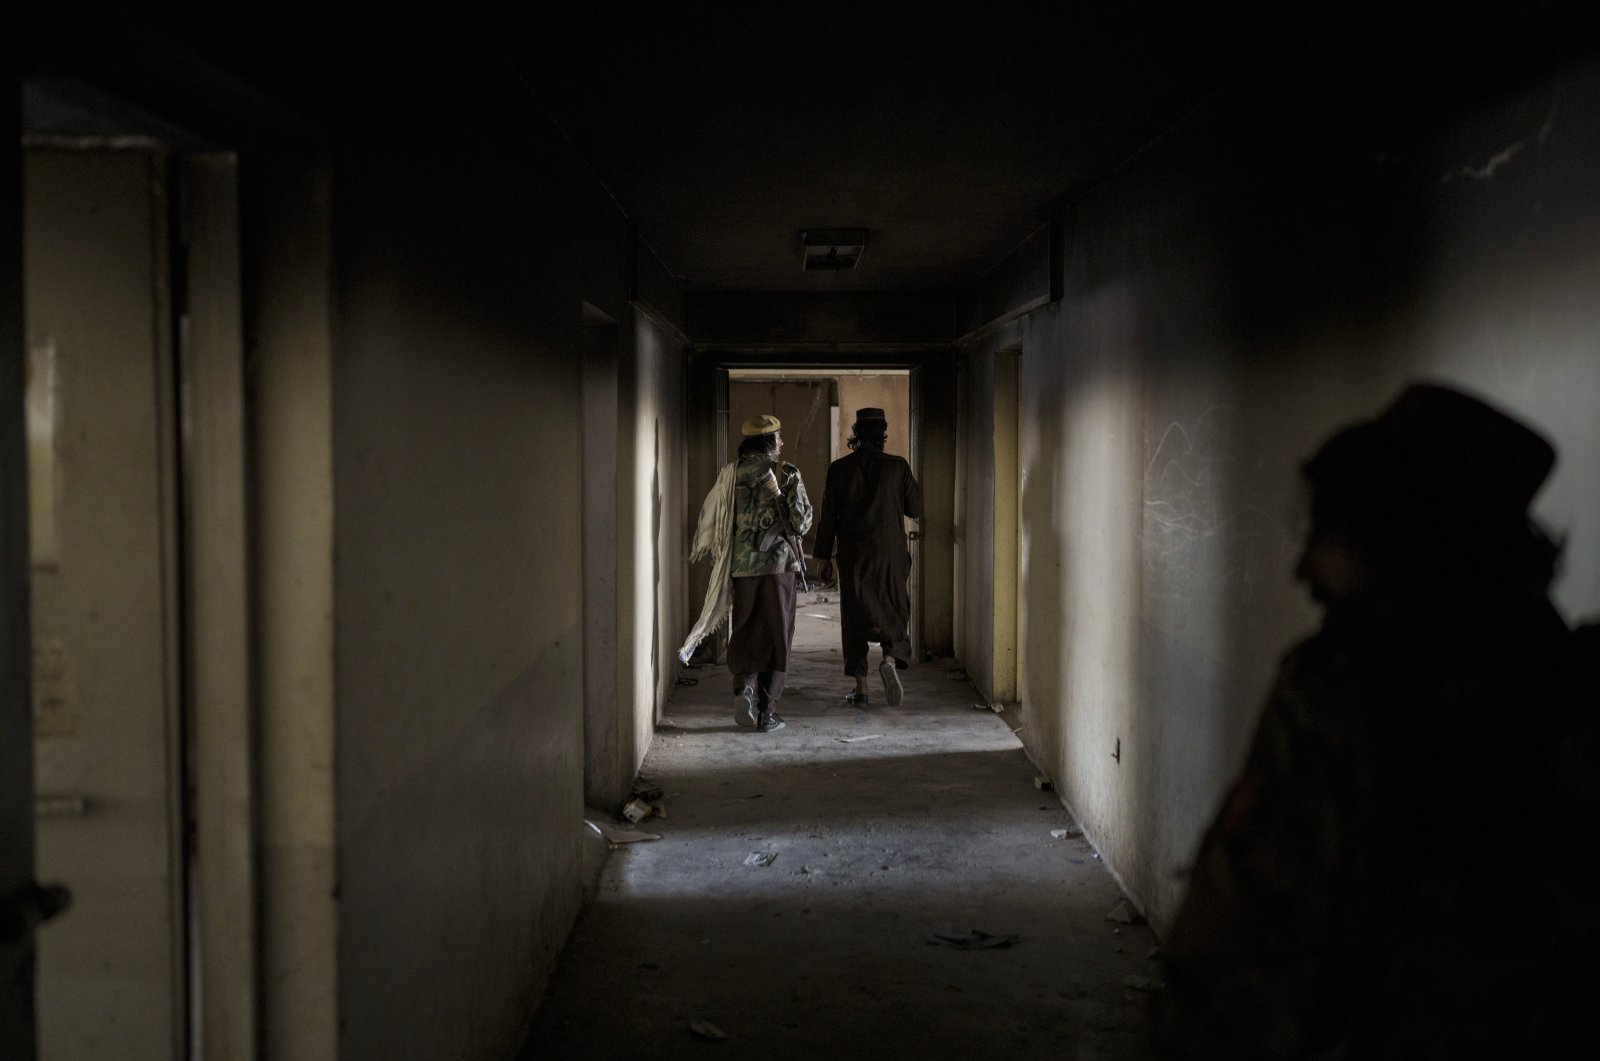 Taliban fighters walk through the alleys of an empty area at the Pul-e-Charkhi prison in Kabul, Afghanistan, Sept. 13, 2021. (AP Photo)